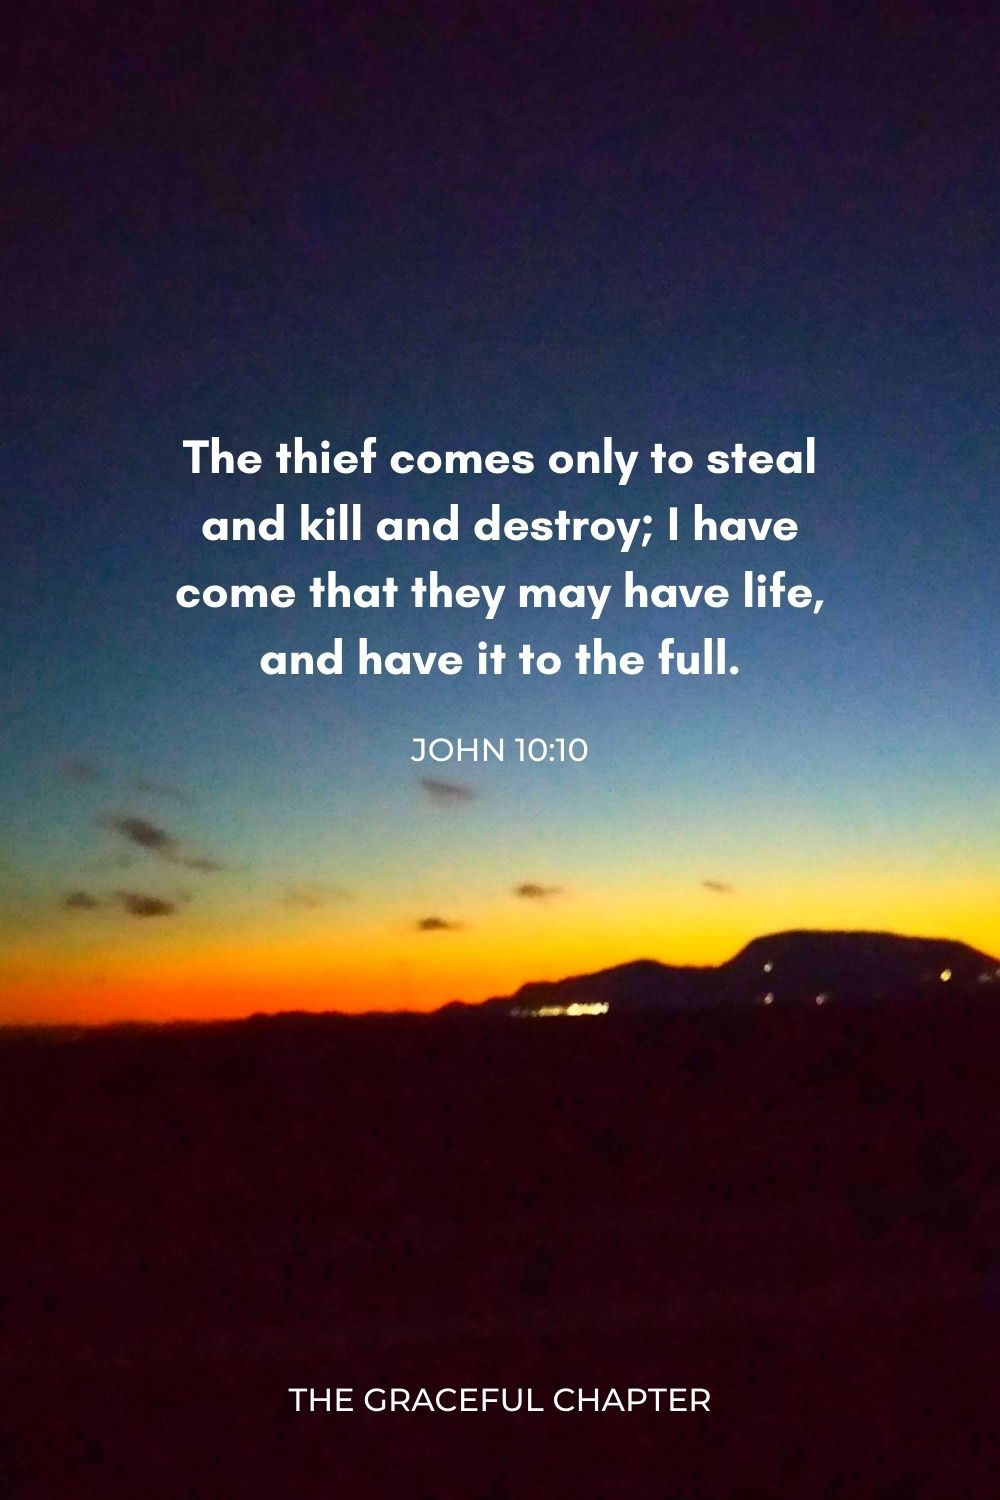 The thief comes only to steal and kill and destroy; I have come that they may have life, and have it to the full. John 10:10